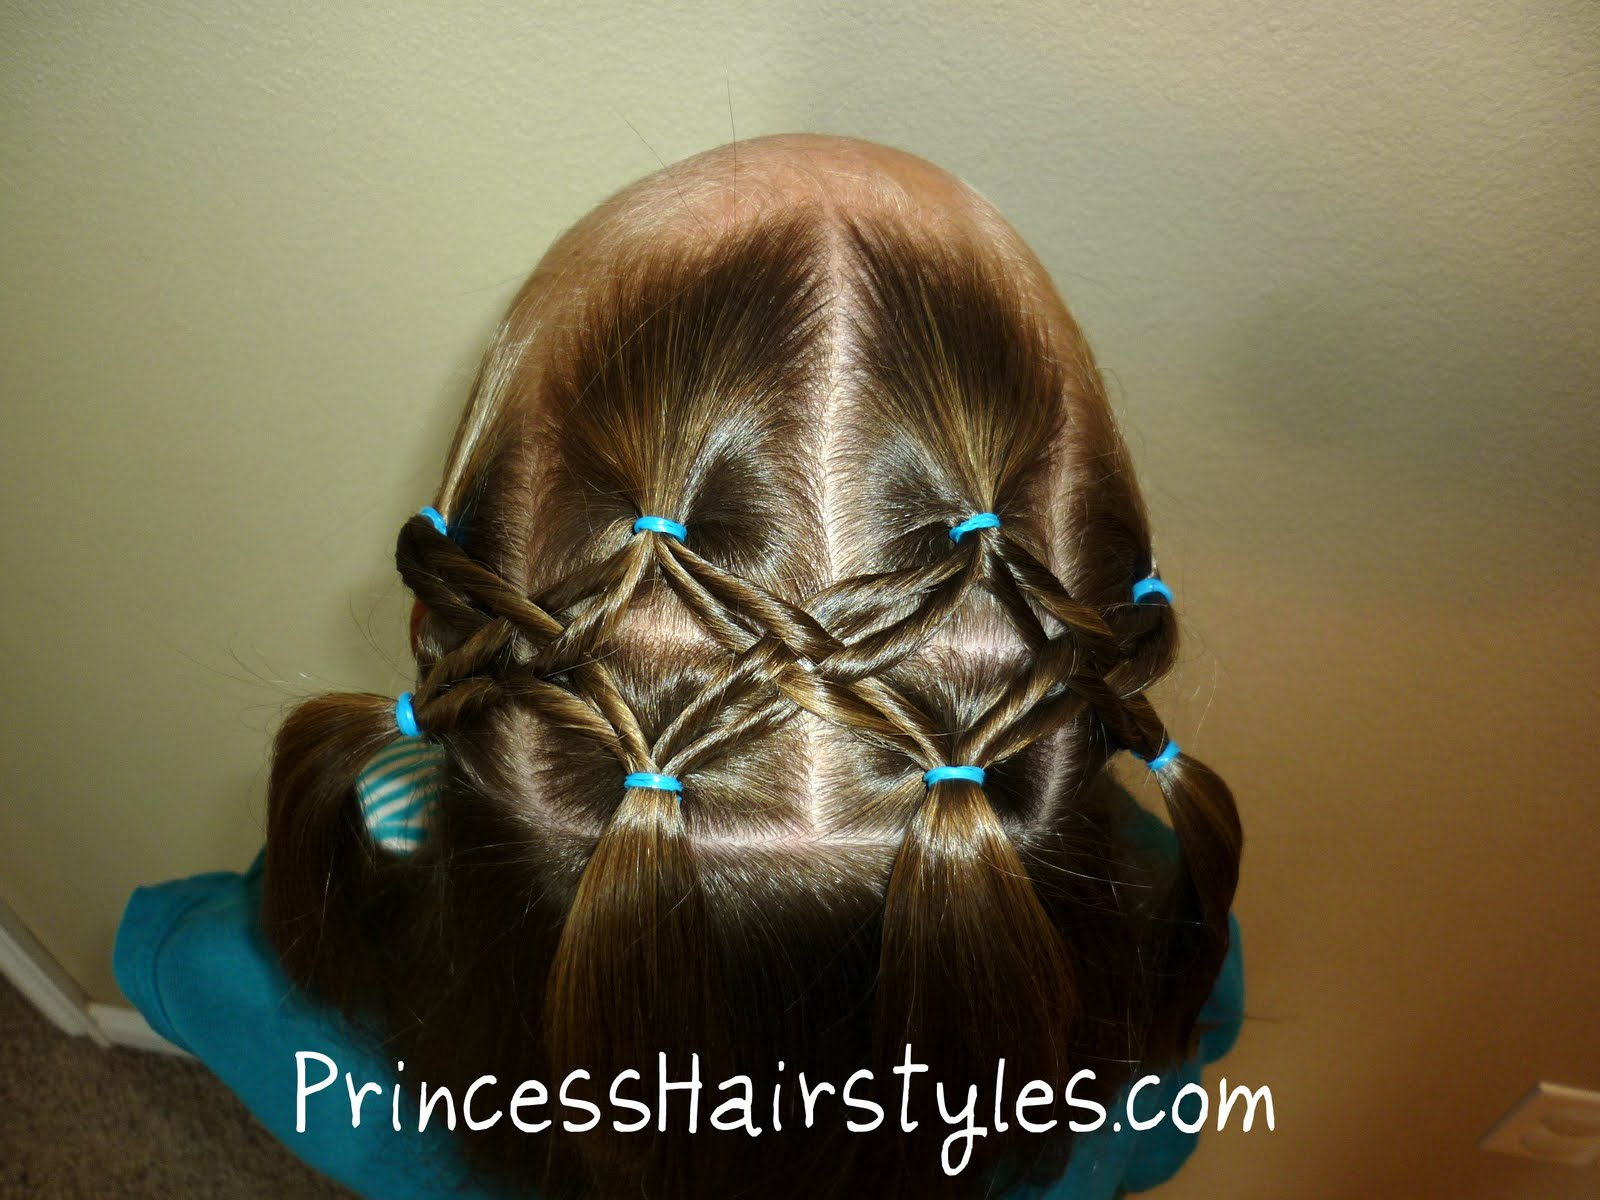 Fantastic Woven Hair Headband Hairstyles For Girls Princess Hairstyles Short Hairstyles Gunalazisus